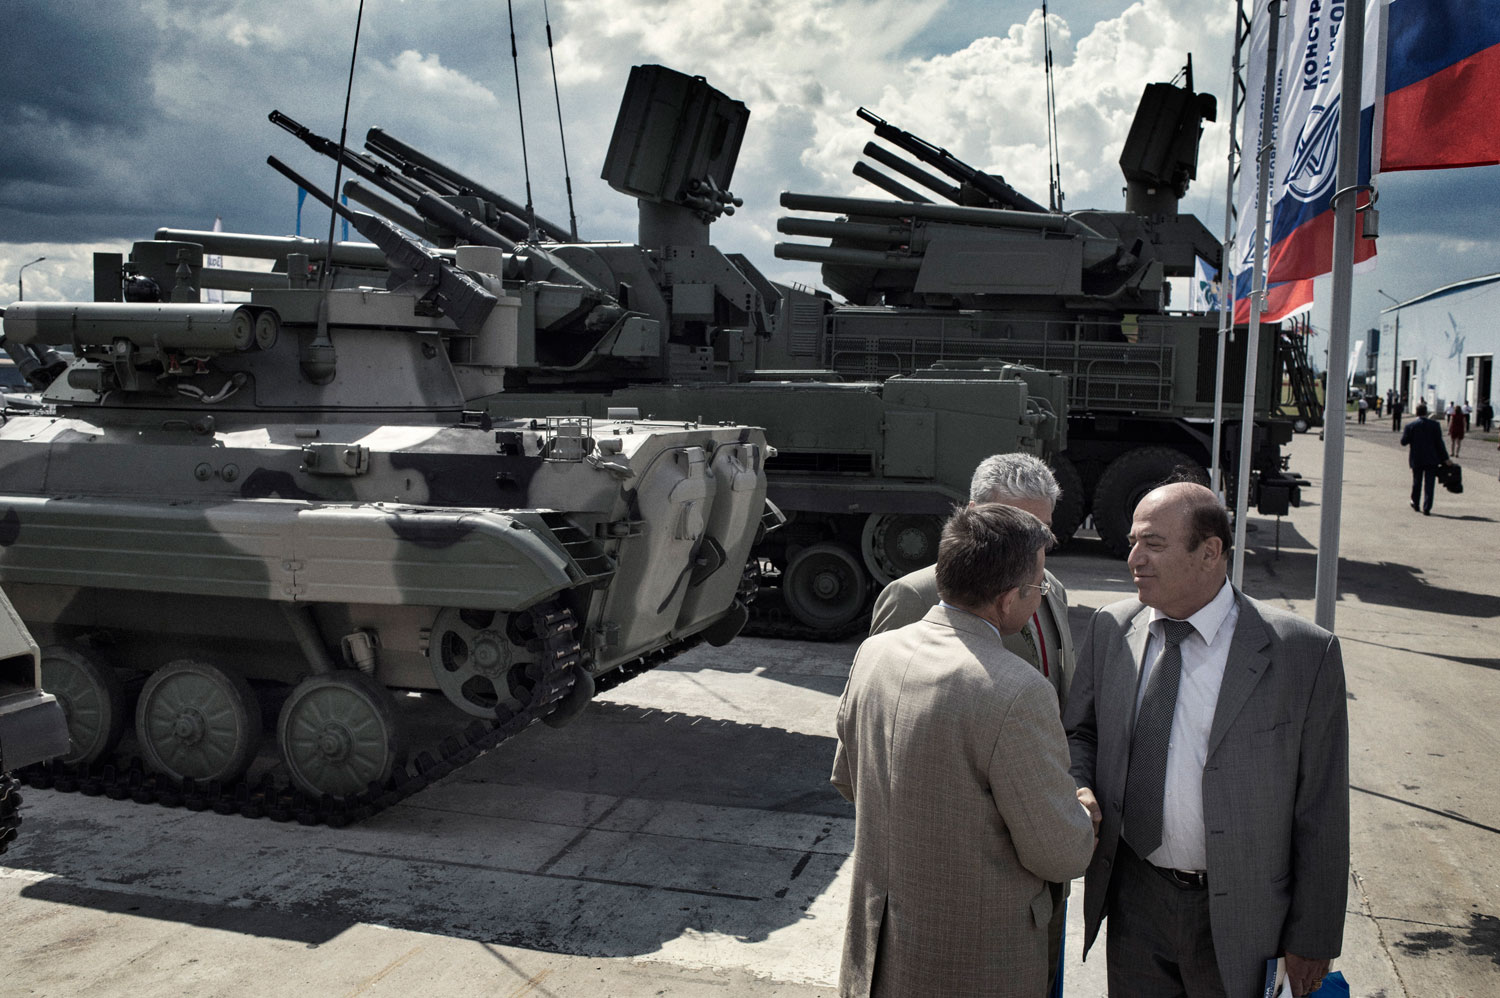 The head of the Syrian delegation to Russia's biennial arms bazaar shakes hands with a representative of Rosoboronexport, the Russian state weapons export monopoly.